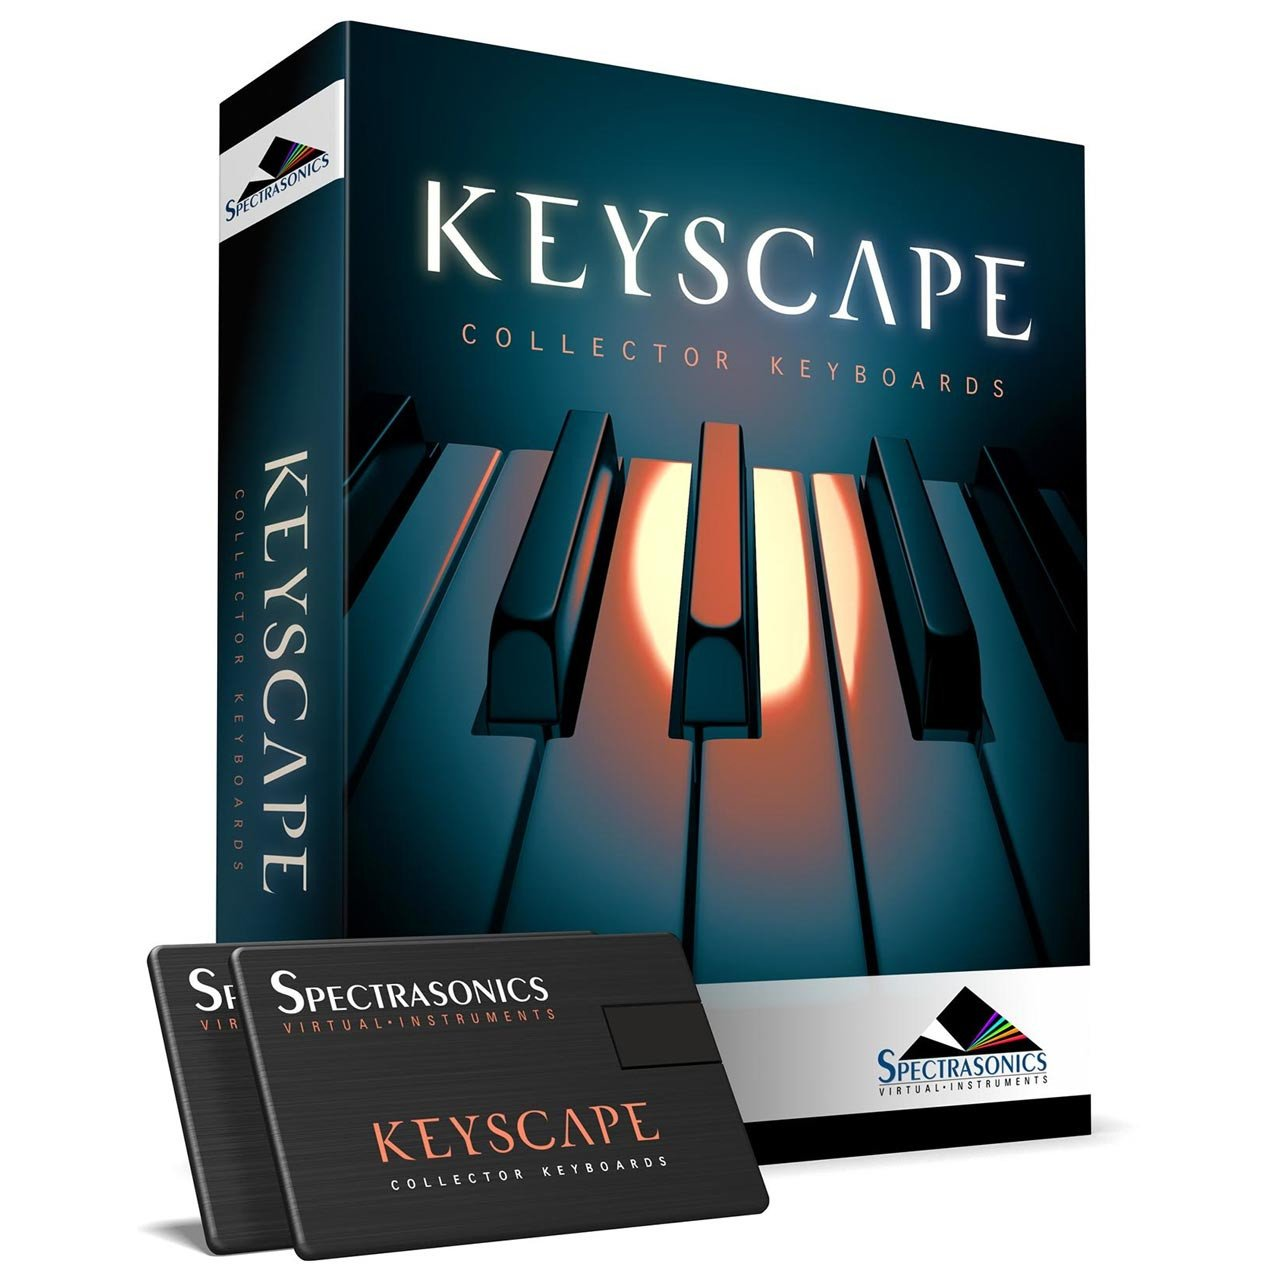 Spectrasonics Keyscape - Collector Keyboards Software Instrument